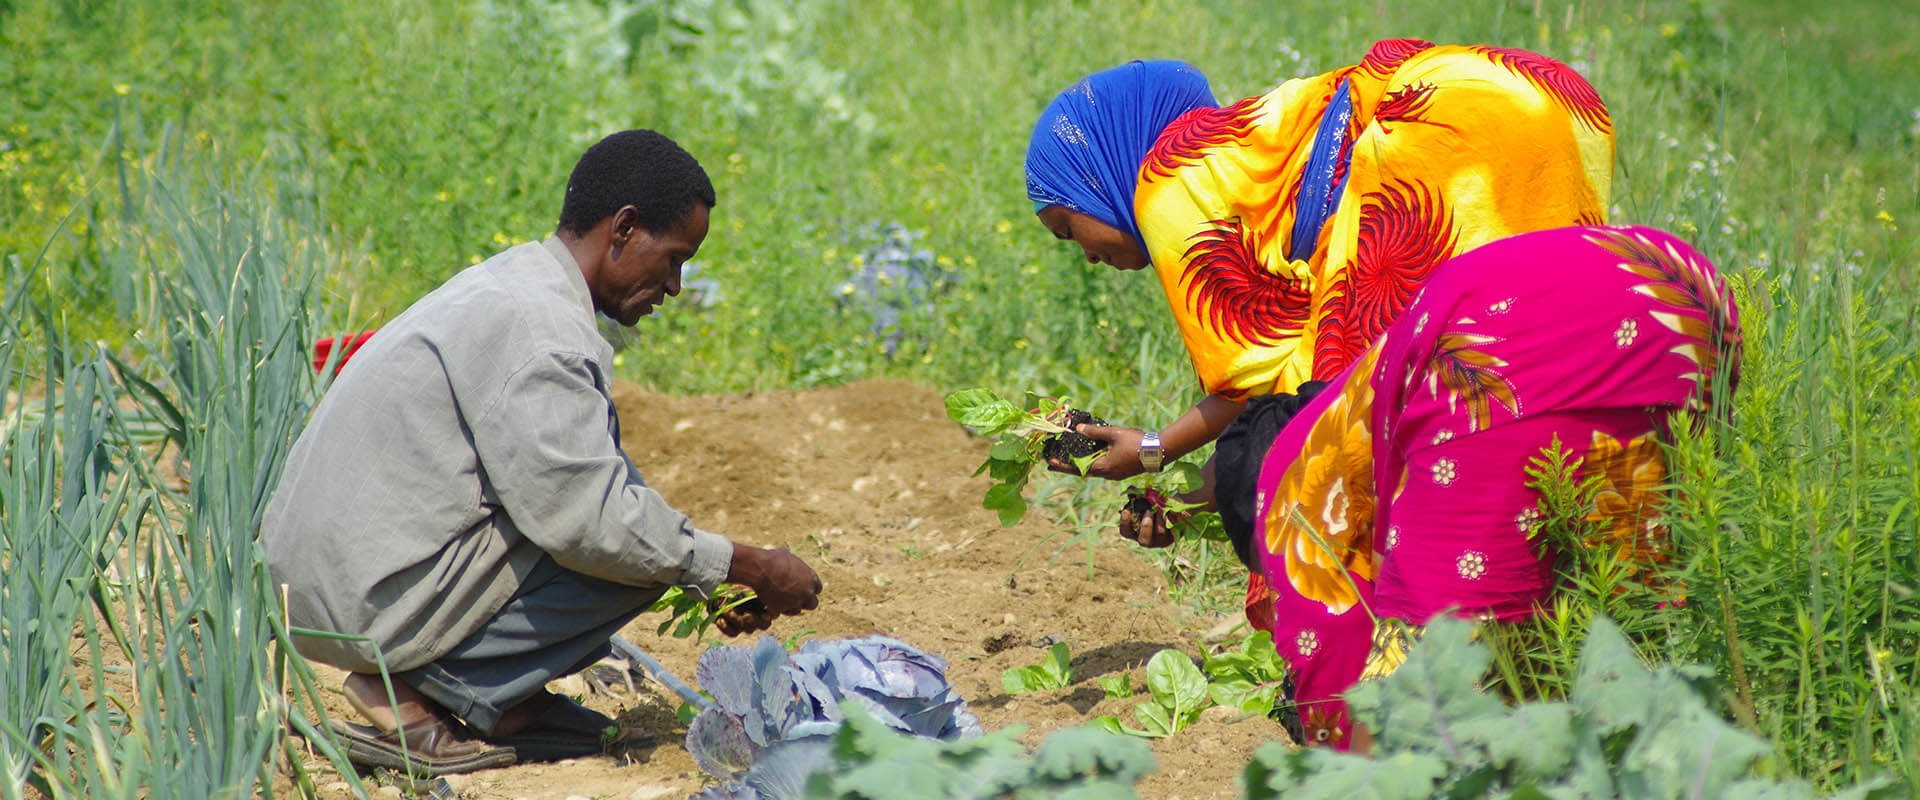 Somali people working at Liberation Farms